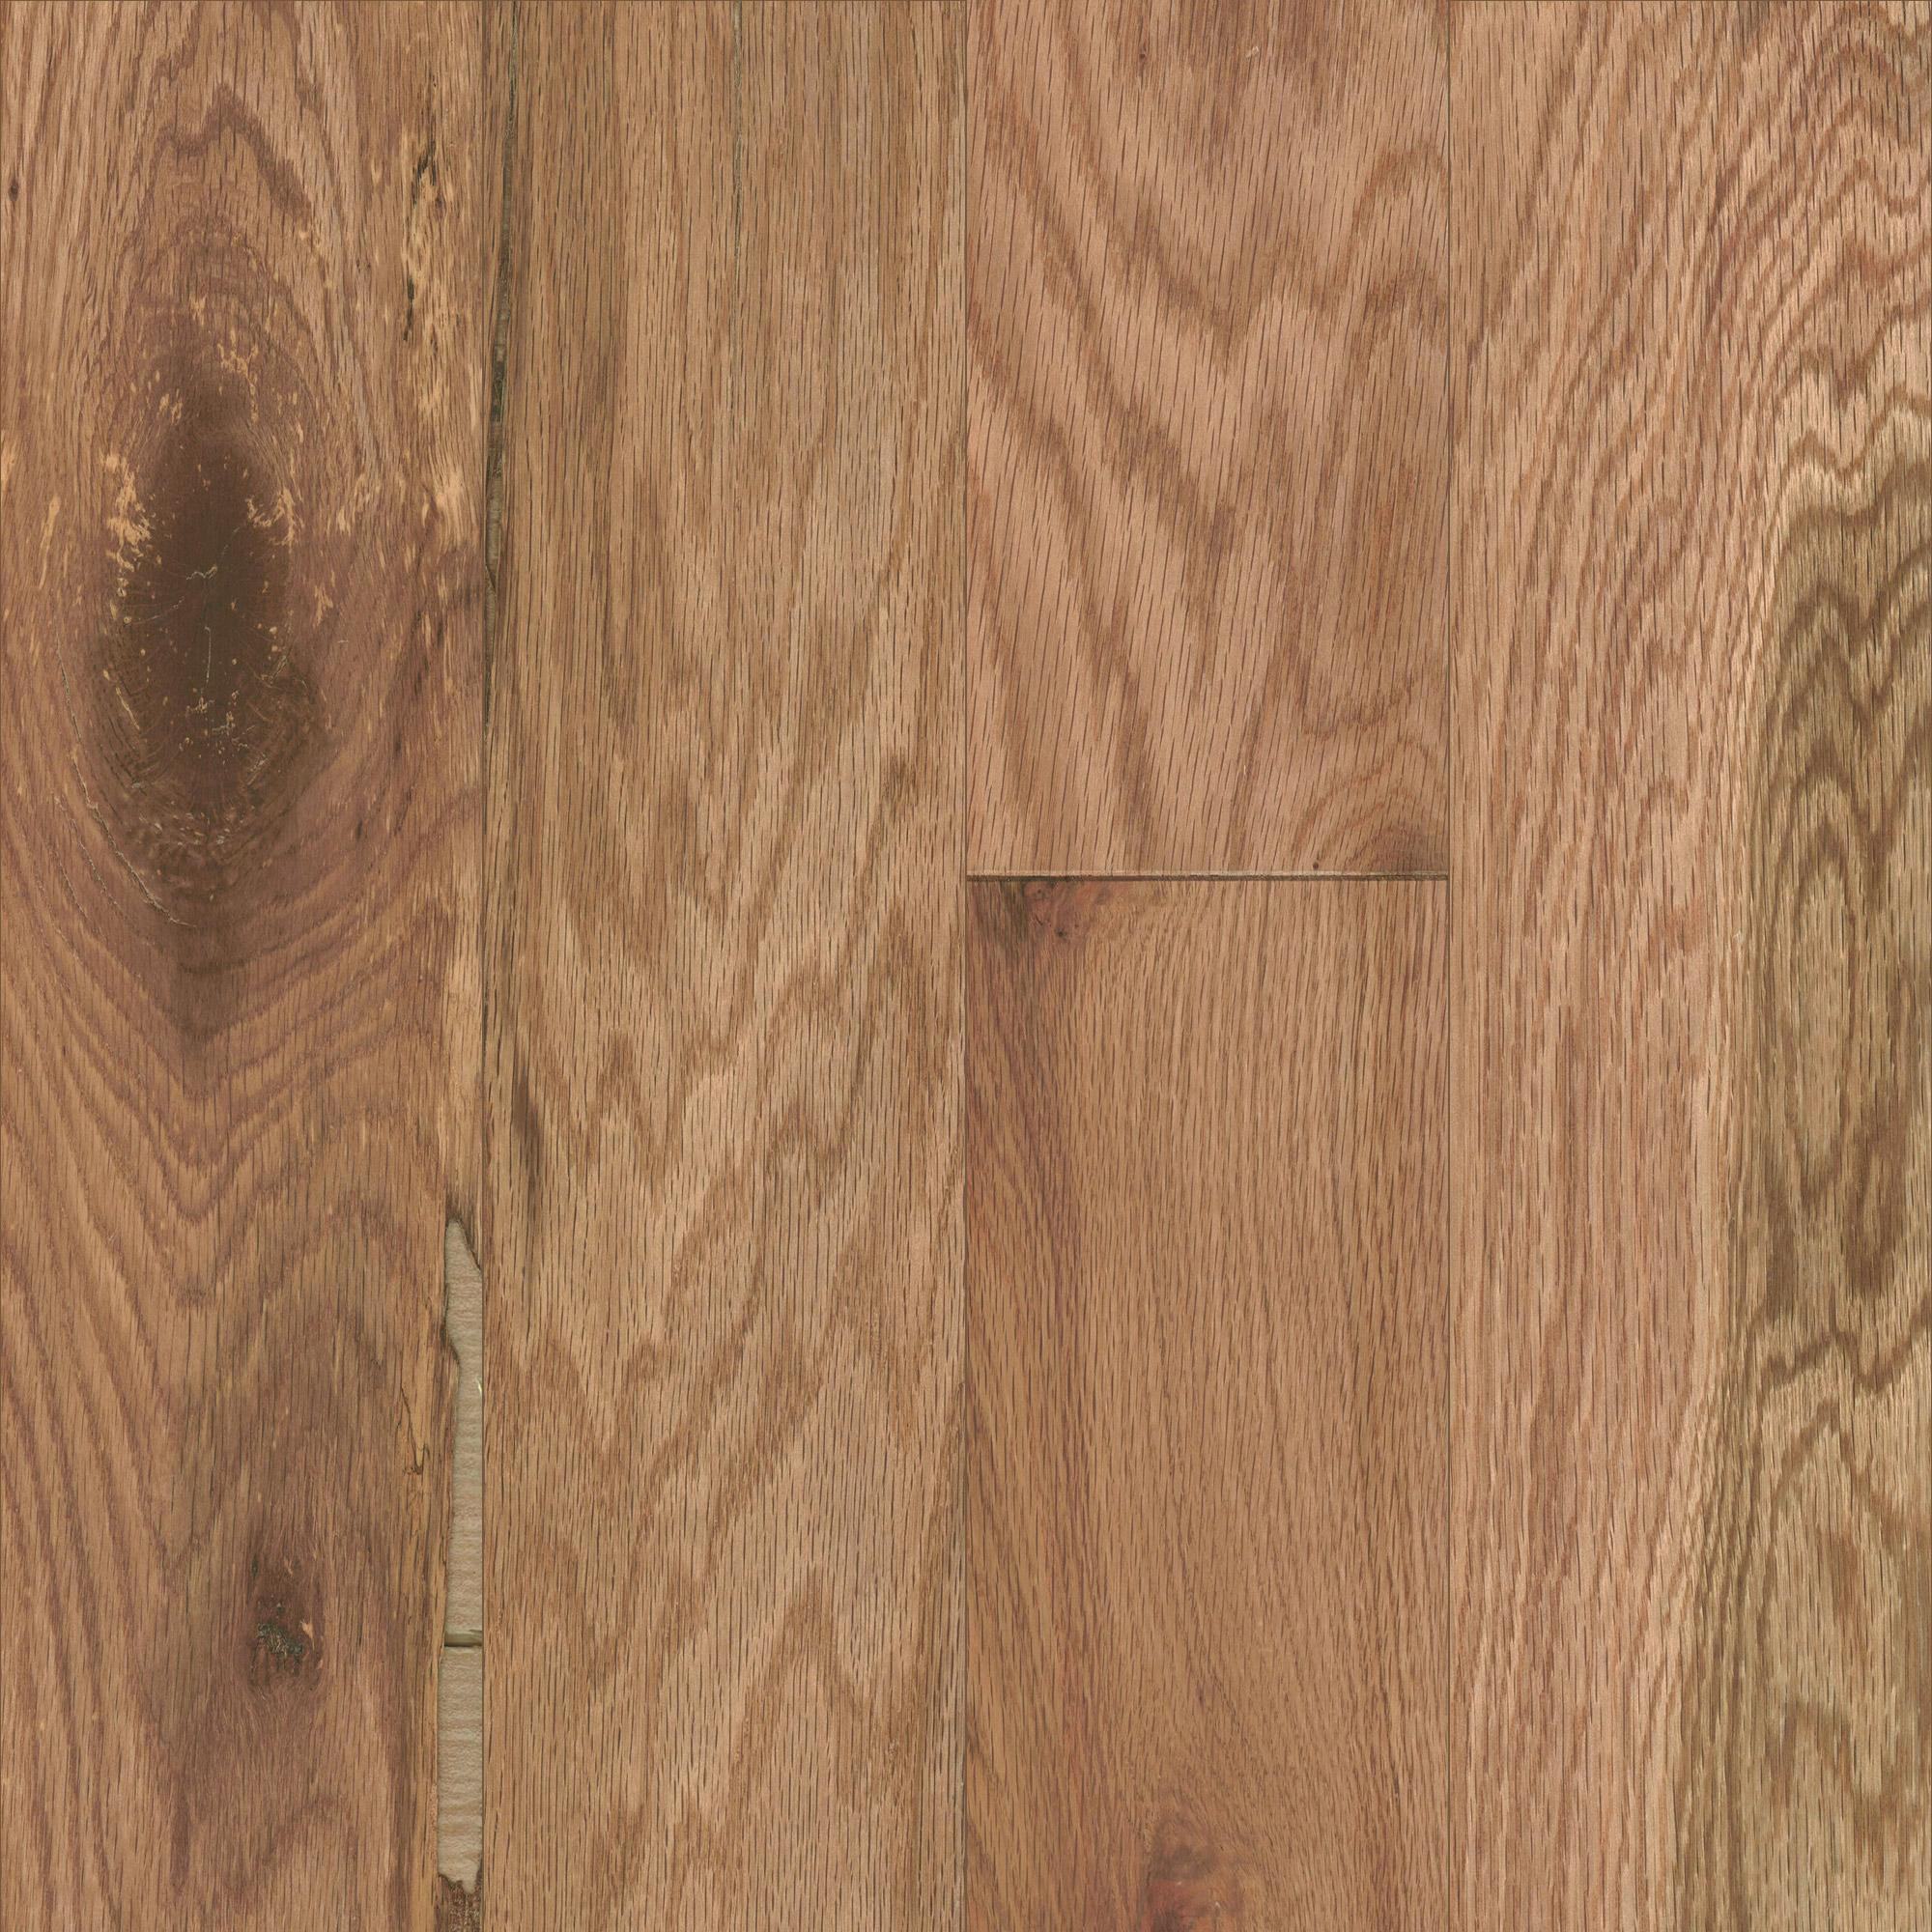 hardwood flooring engineered vs solid cost of mullican ridgecrest red oak natural 1 2 thick 5 wide engineered throughout mullican ridgecrest red oak natural 1 2 thick 5 wide engineered hardwood flooring